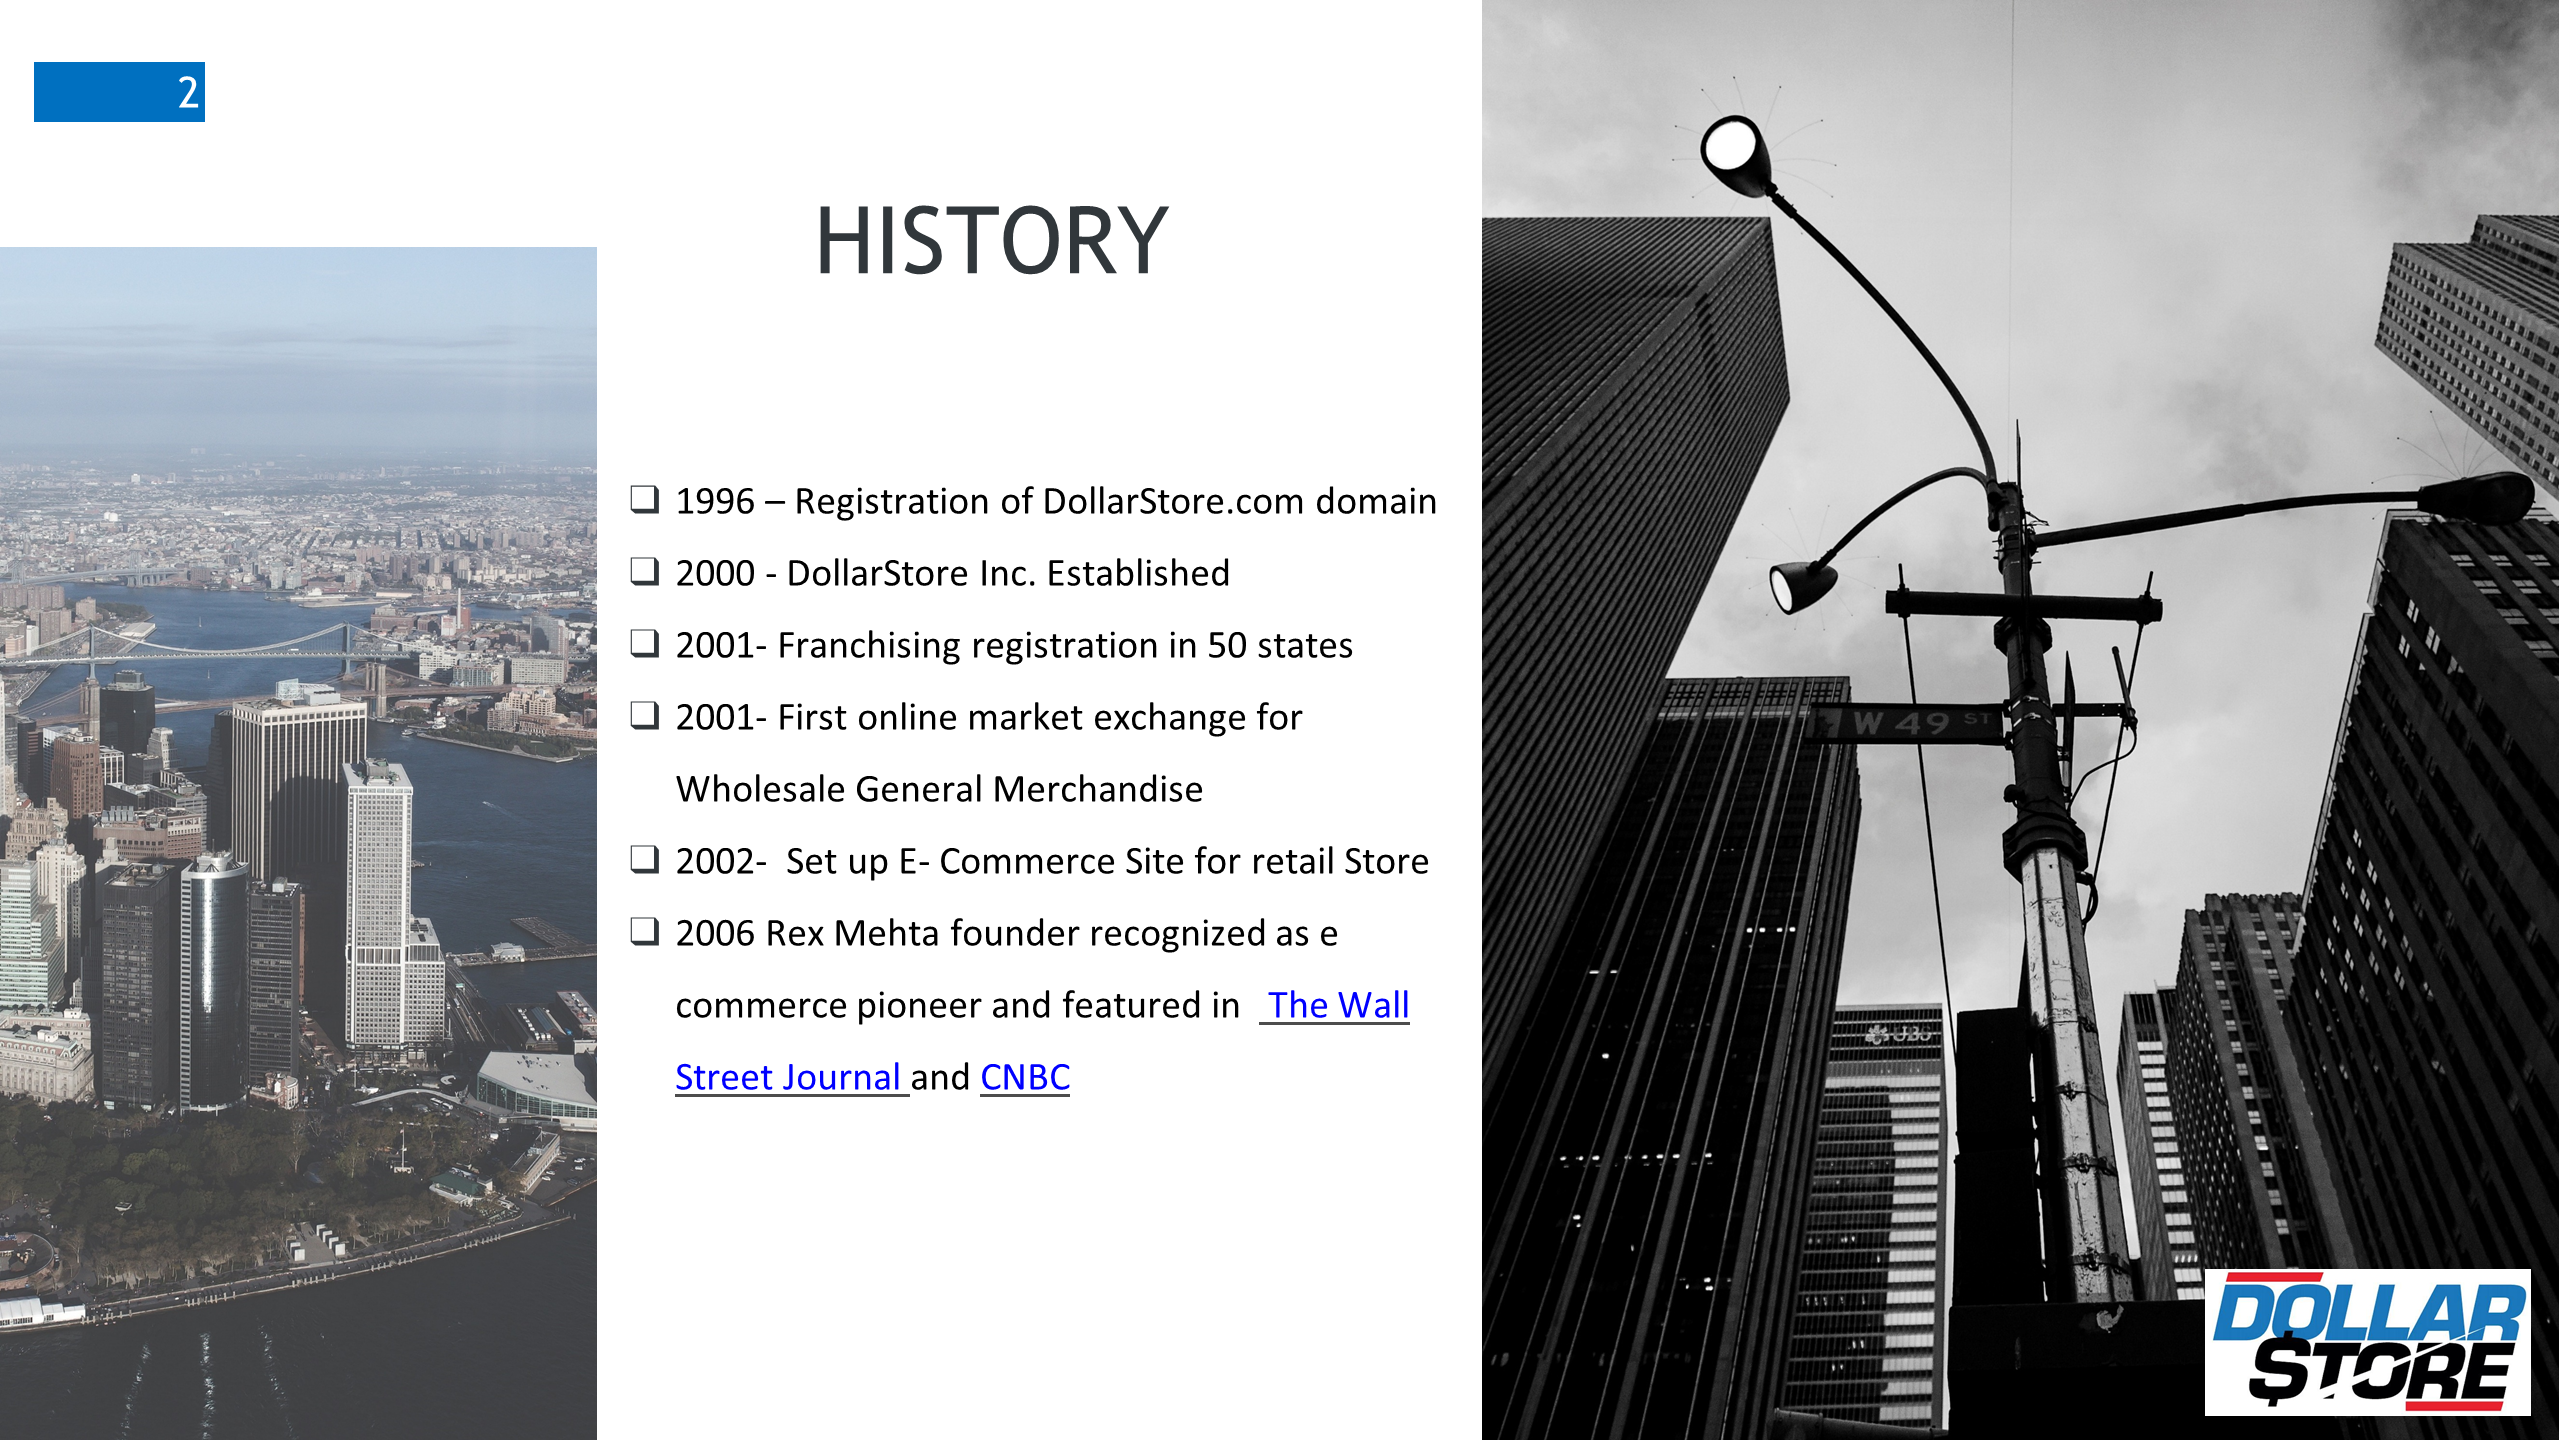 History of DollarStore